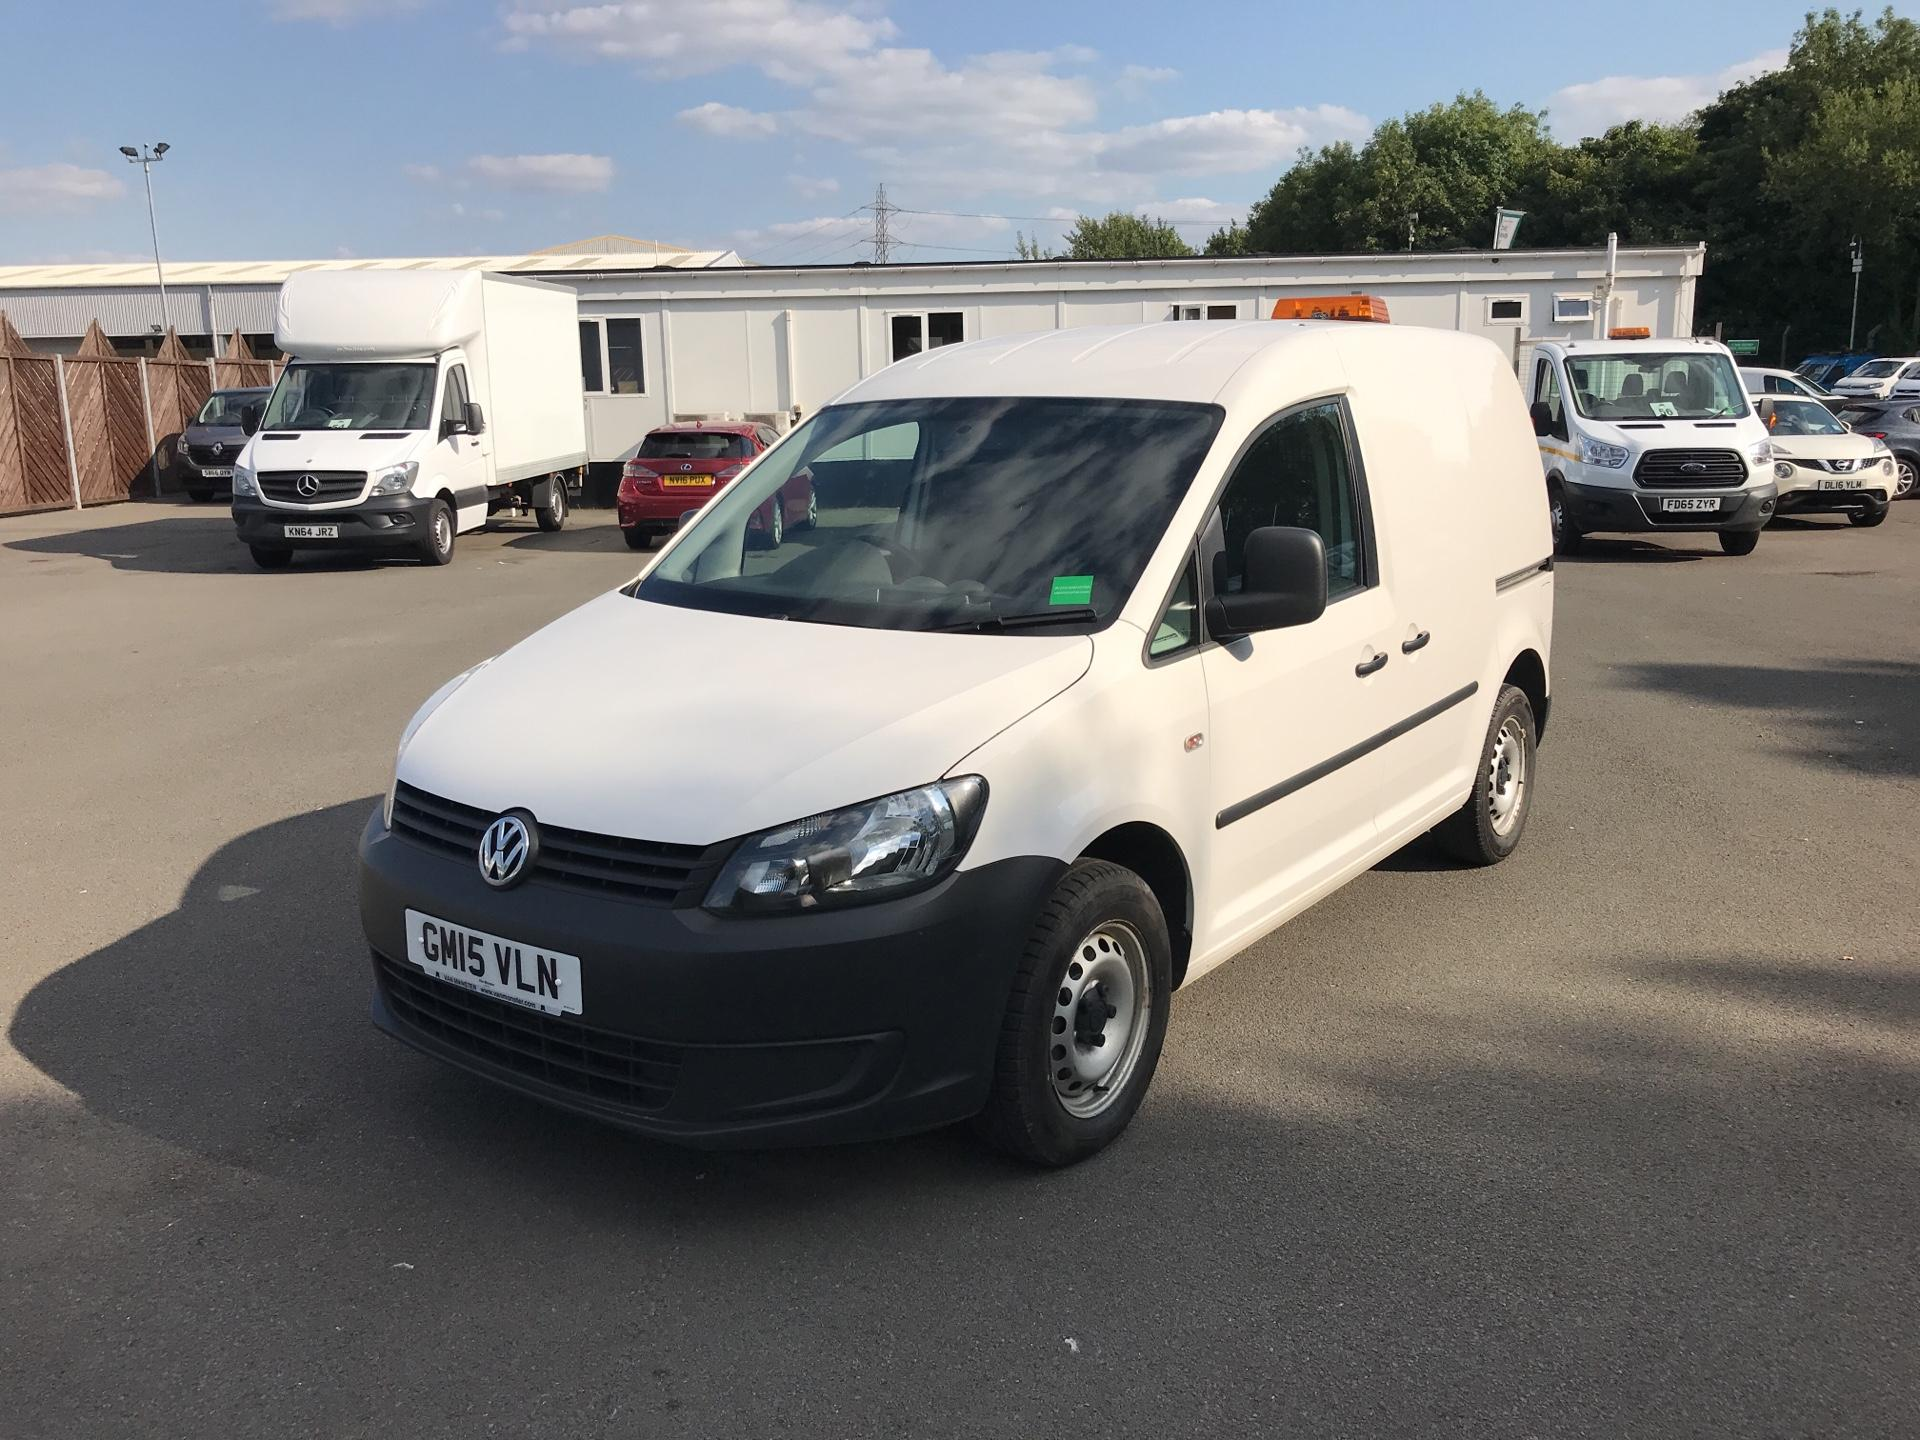 2015 Volkswagen Caddy  1.6 102PS STARTLINE EURO 5  *VALUE RANGE VEHICLE - CONDITION REFLECTED IN PRICE*  (GM15VLN) Image 7